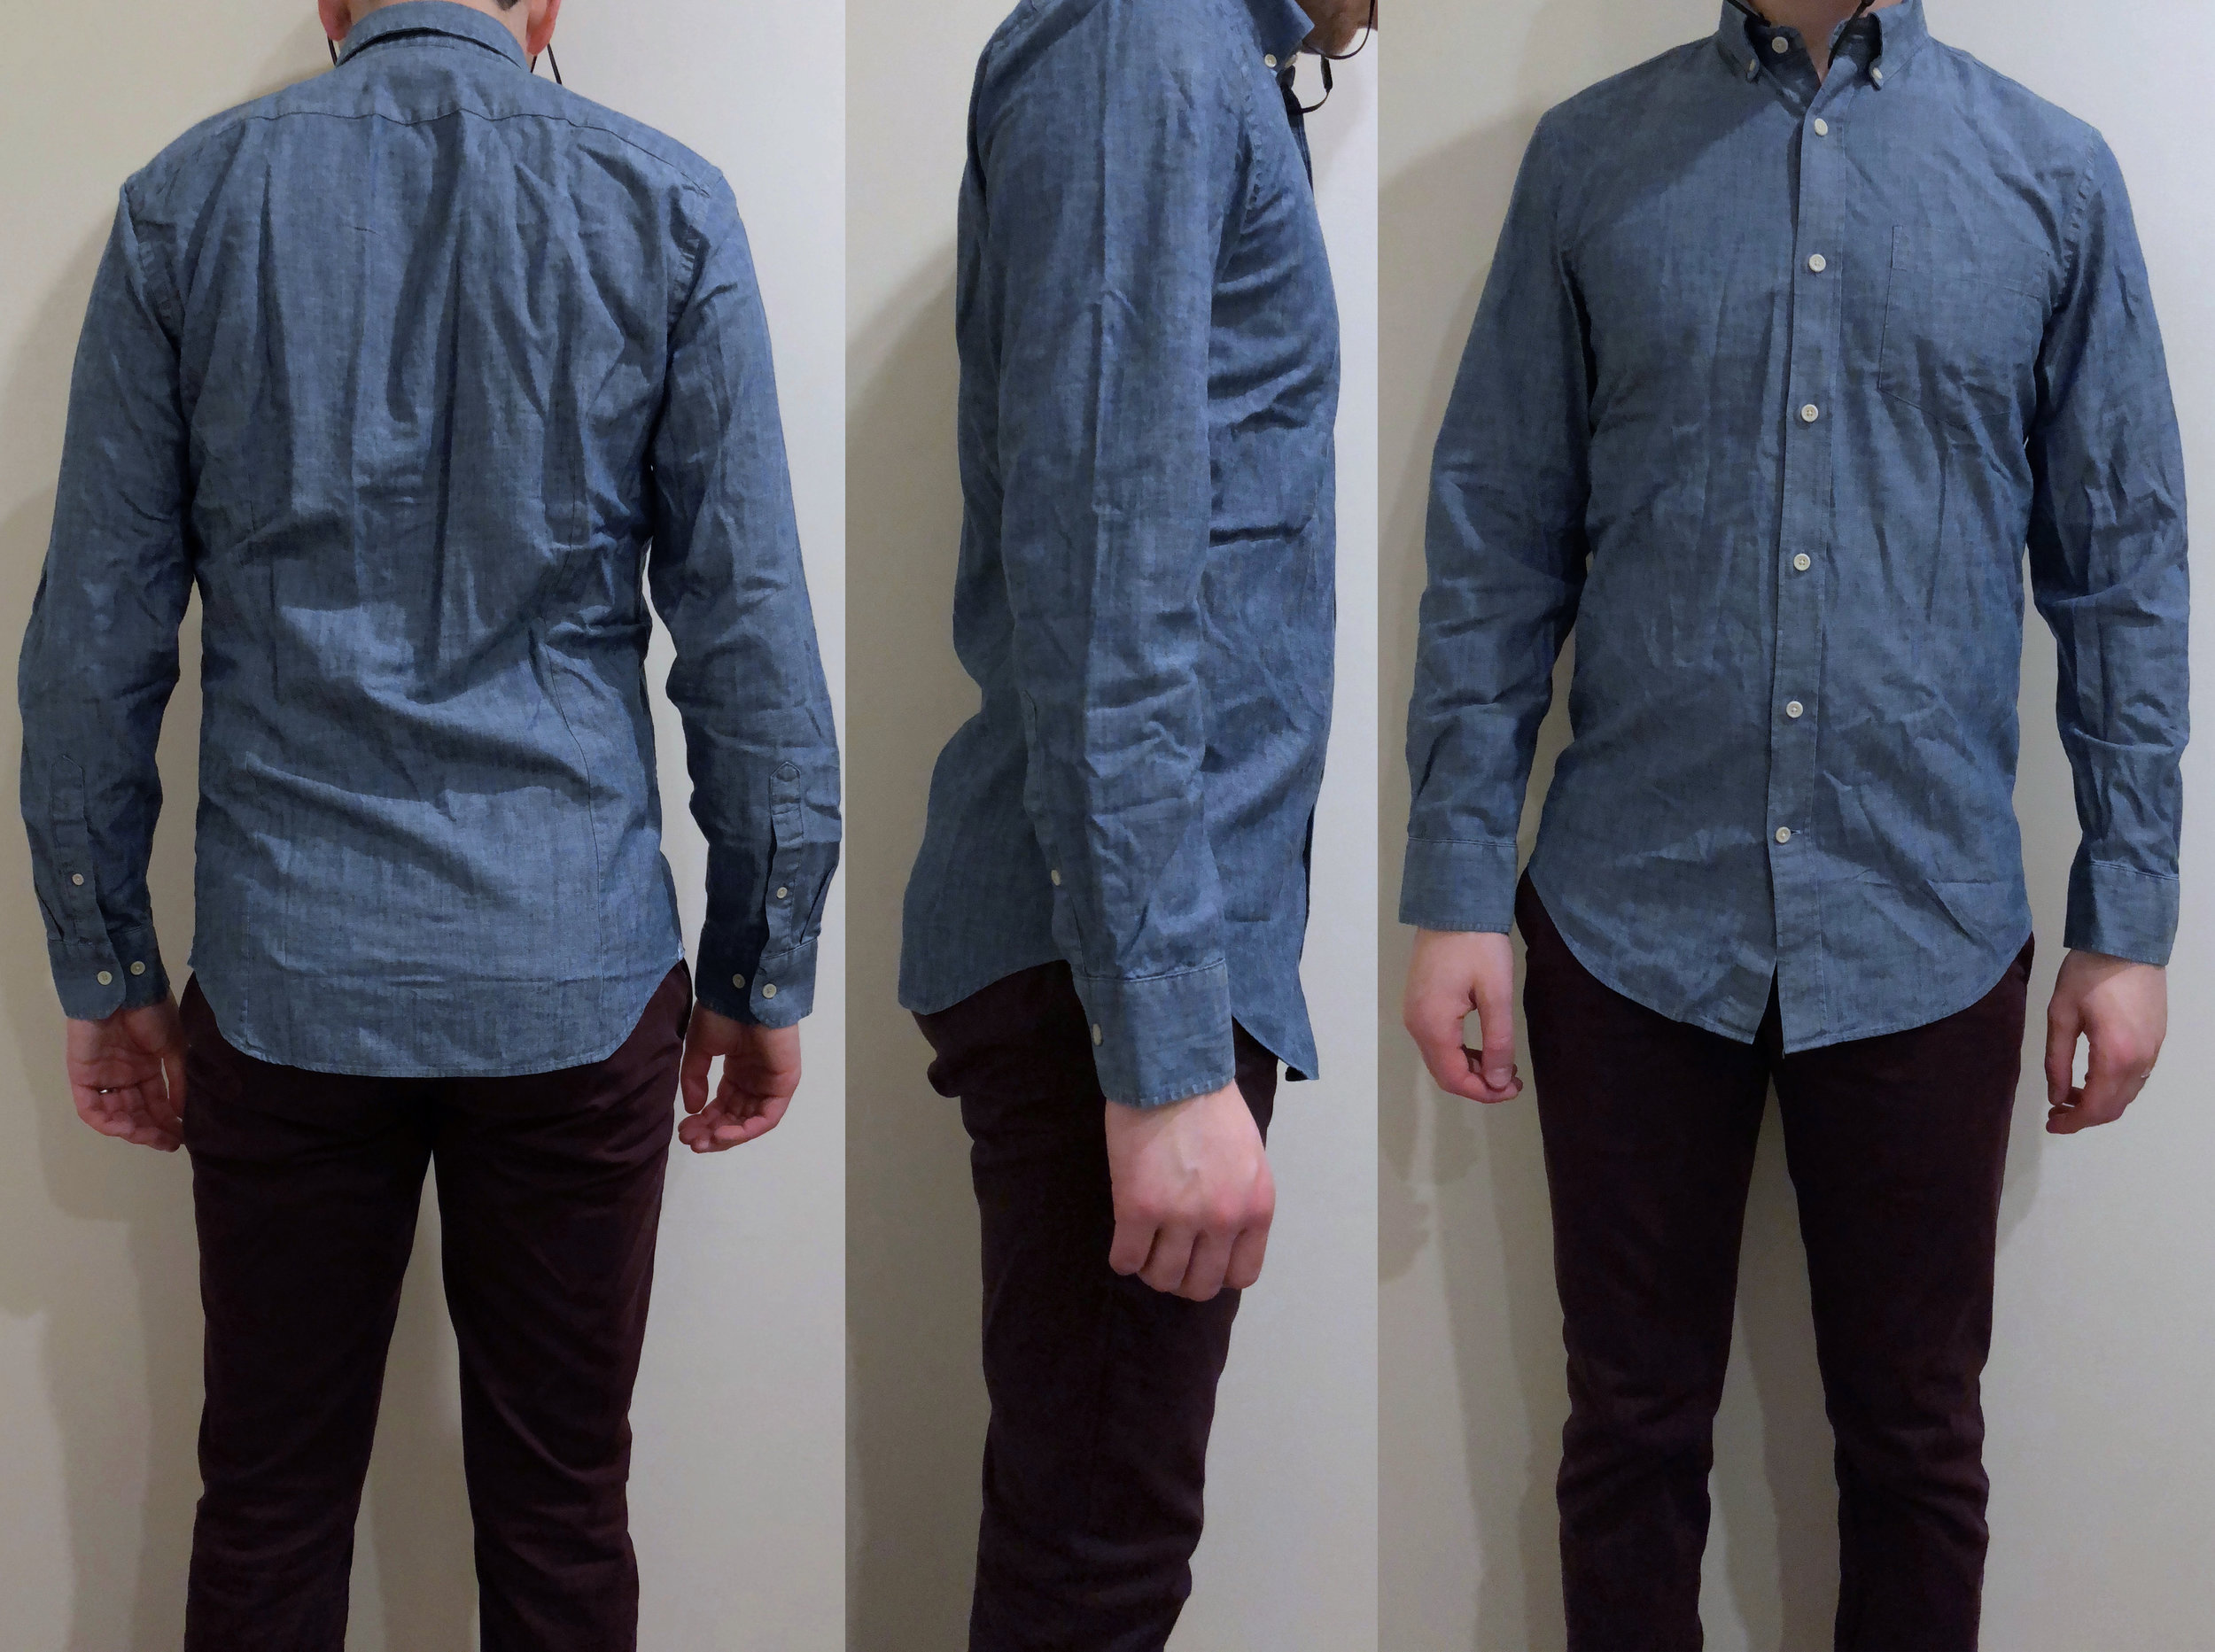 Chambray shirt — Comically long and much roomier throughout